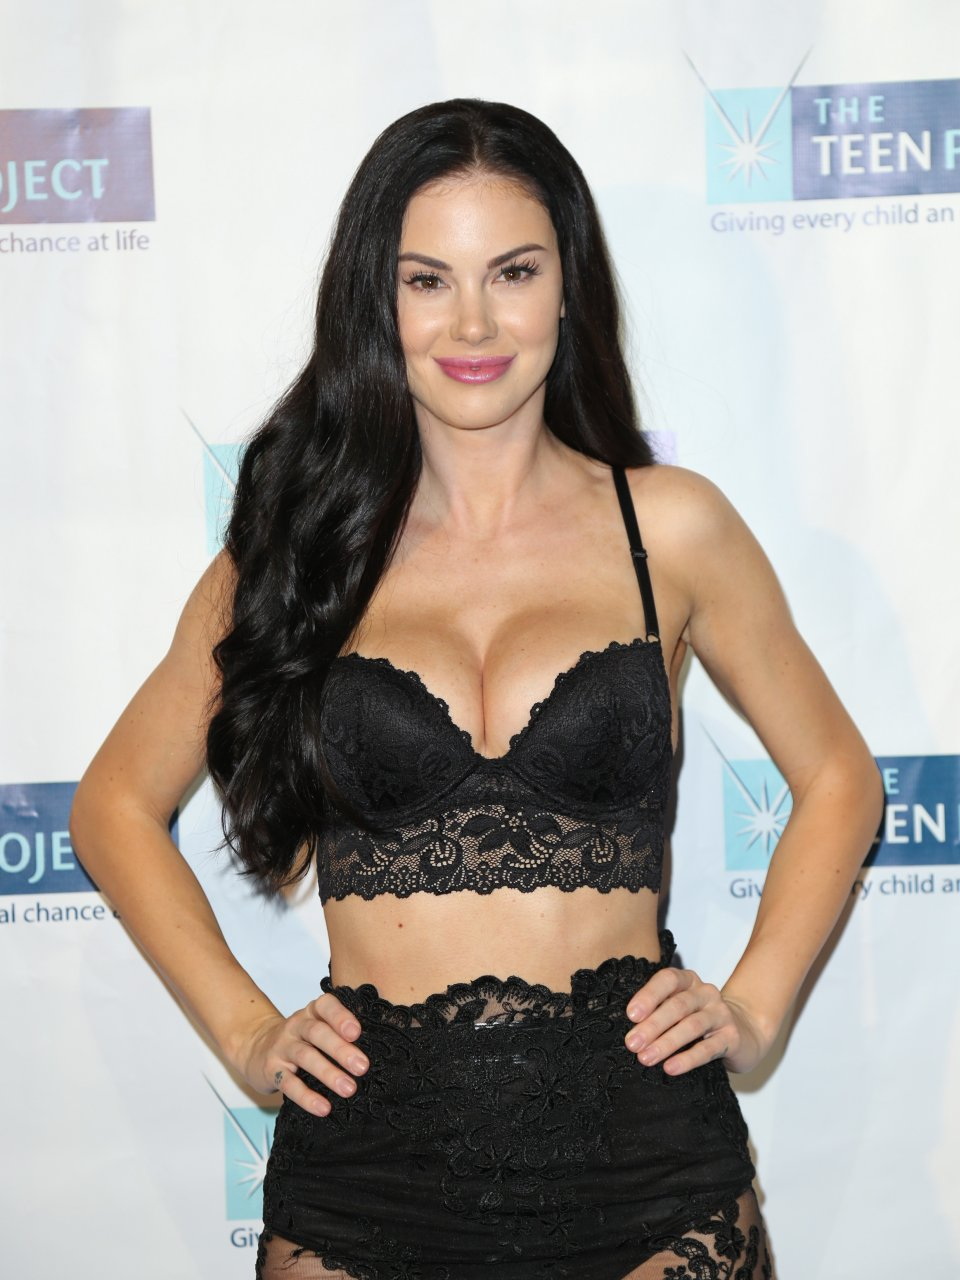 This jayde nicole nude pictures what body